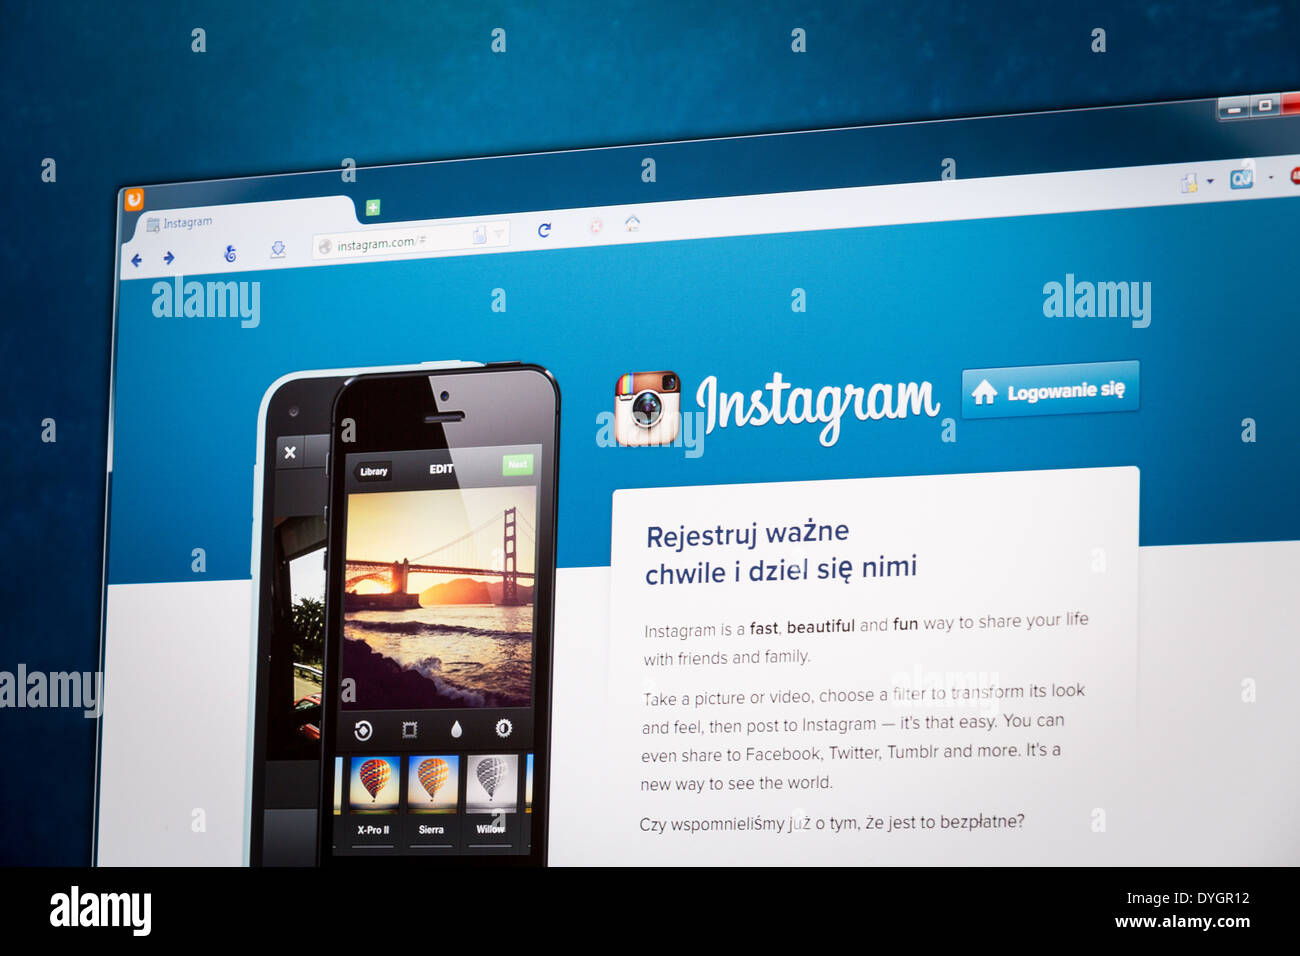 BELCHATOW, POLAND - APRIL 11, 2014: Photo of Instagram social network homepage on a monitor screen. - Stock Image